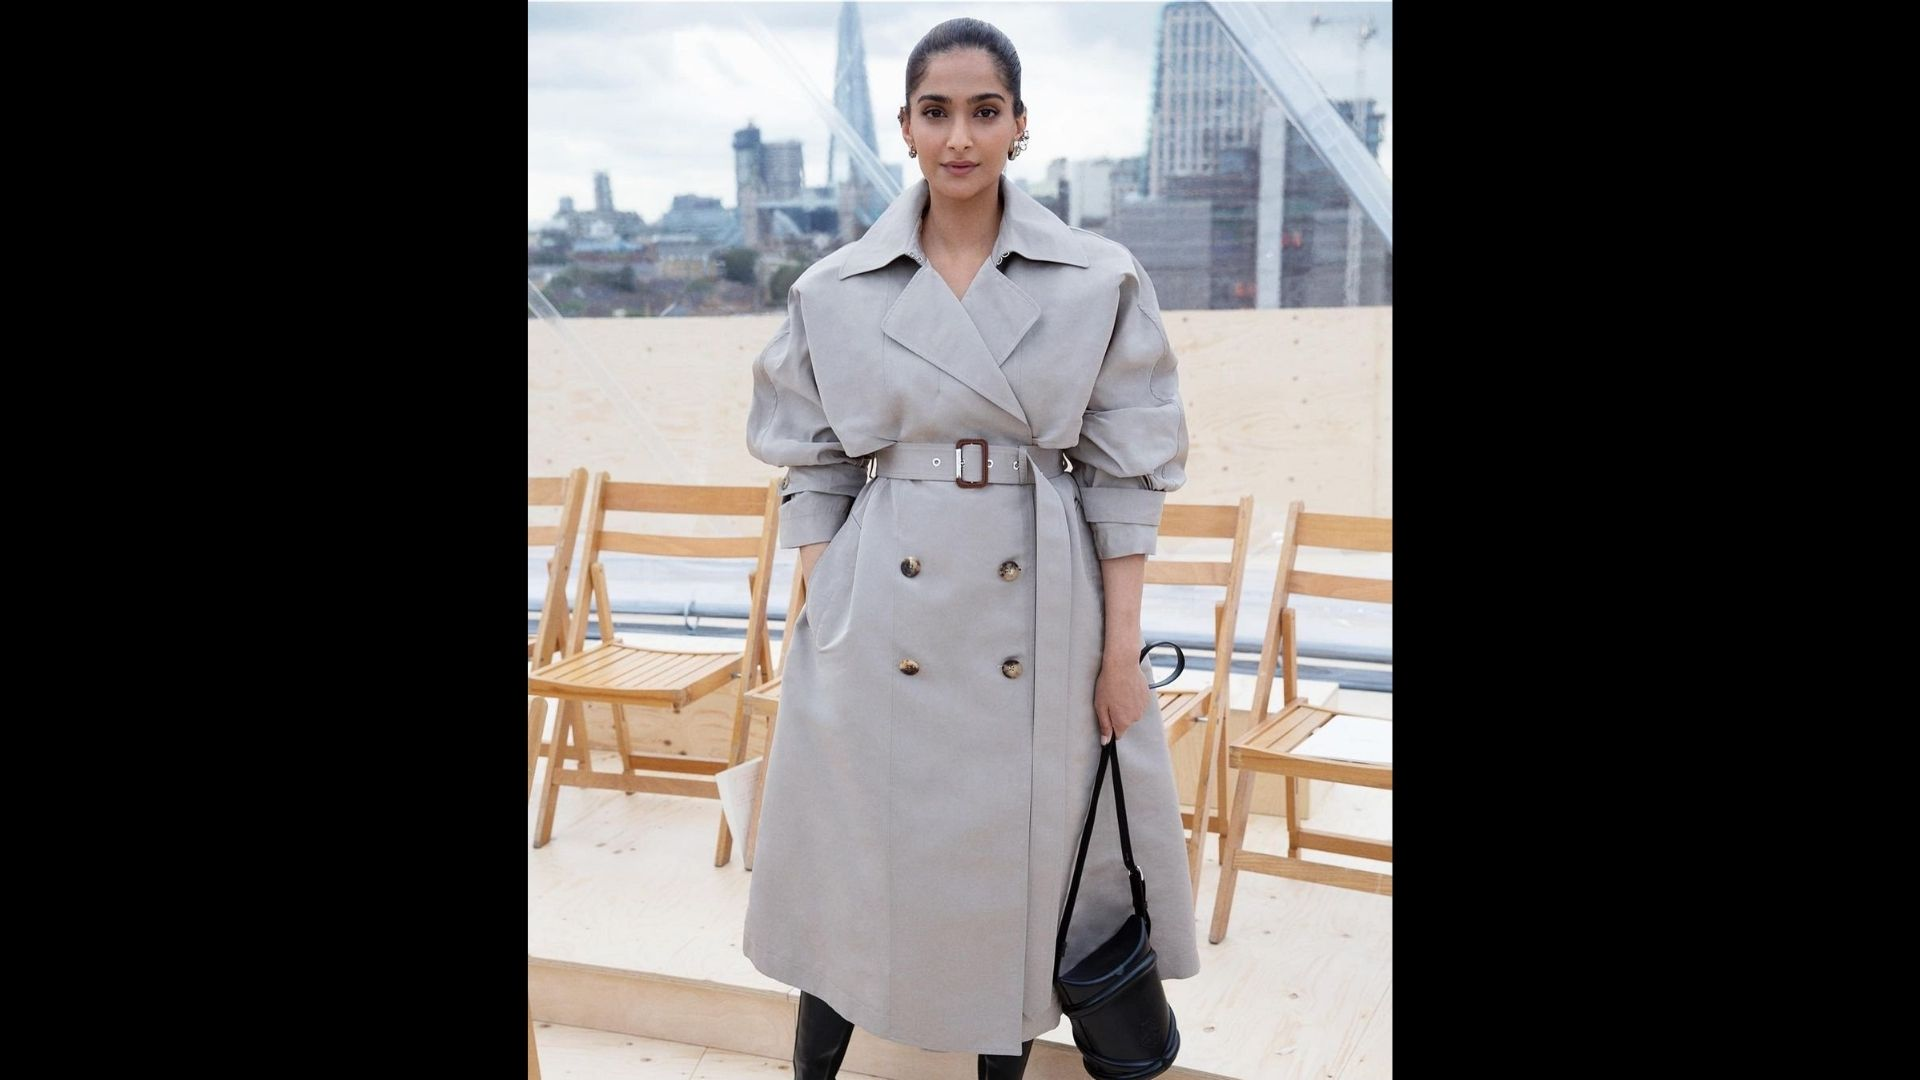 Sonam Kapoor's Trench Coat Is All You Need For Your Winter; Sets Gram On Fire With Provocative Attire